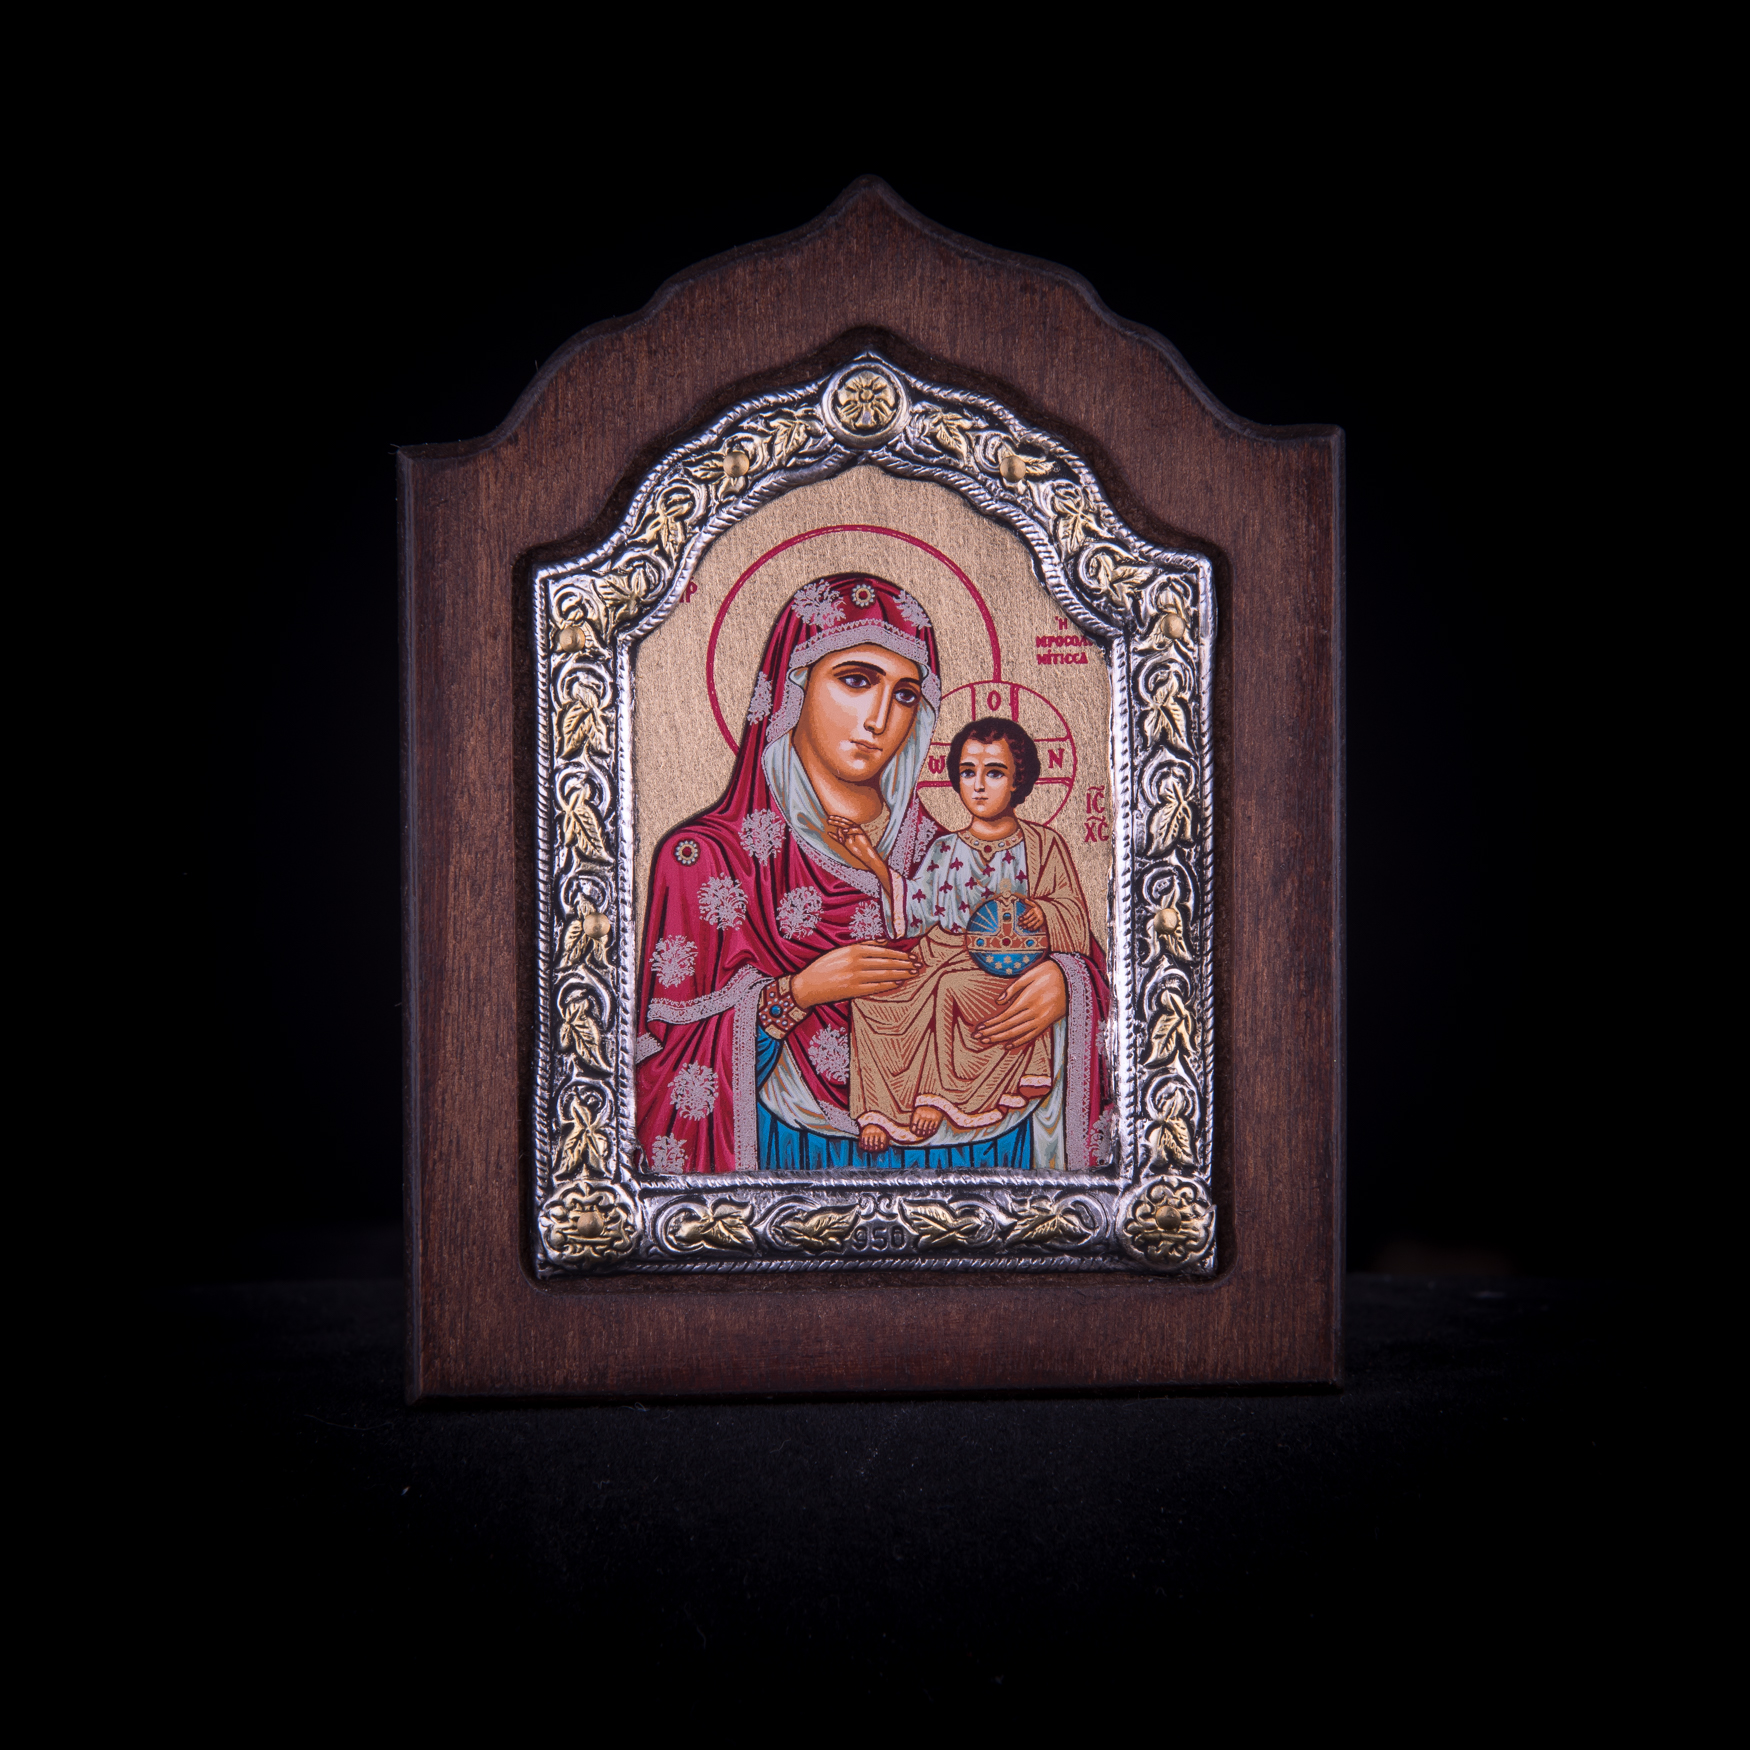 002/0052 Silver icon of Virgin Mary of jerusalem